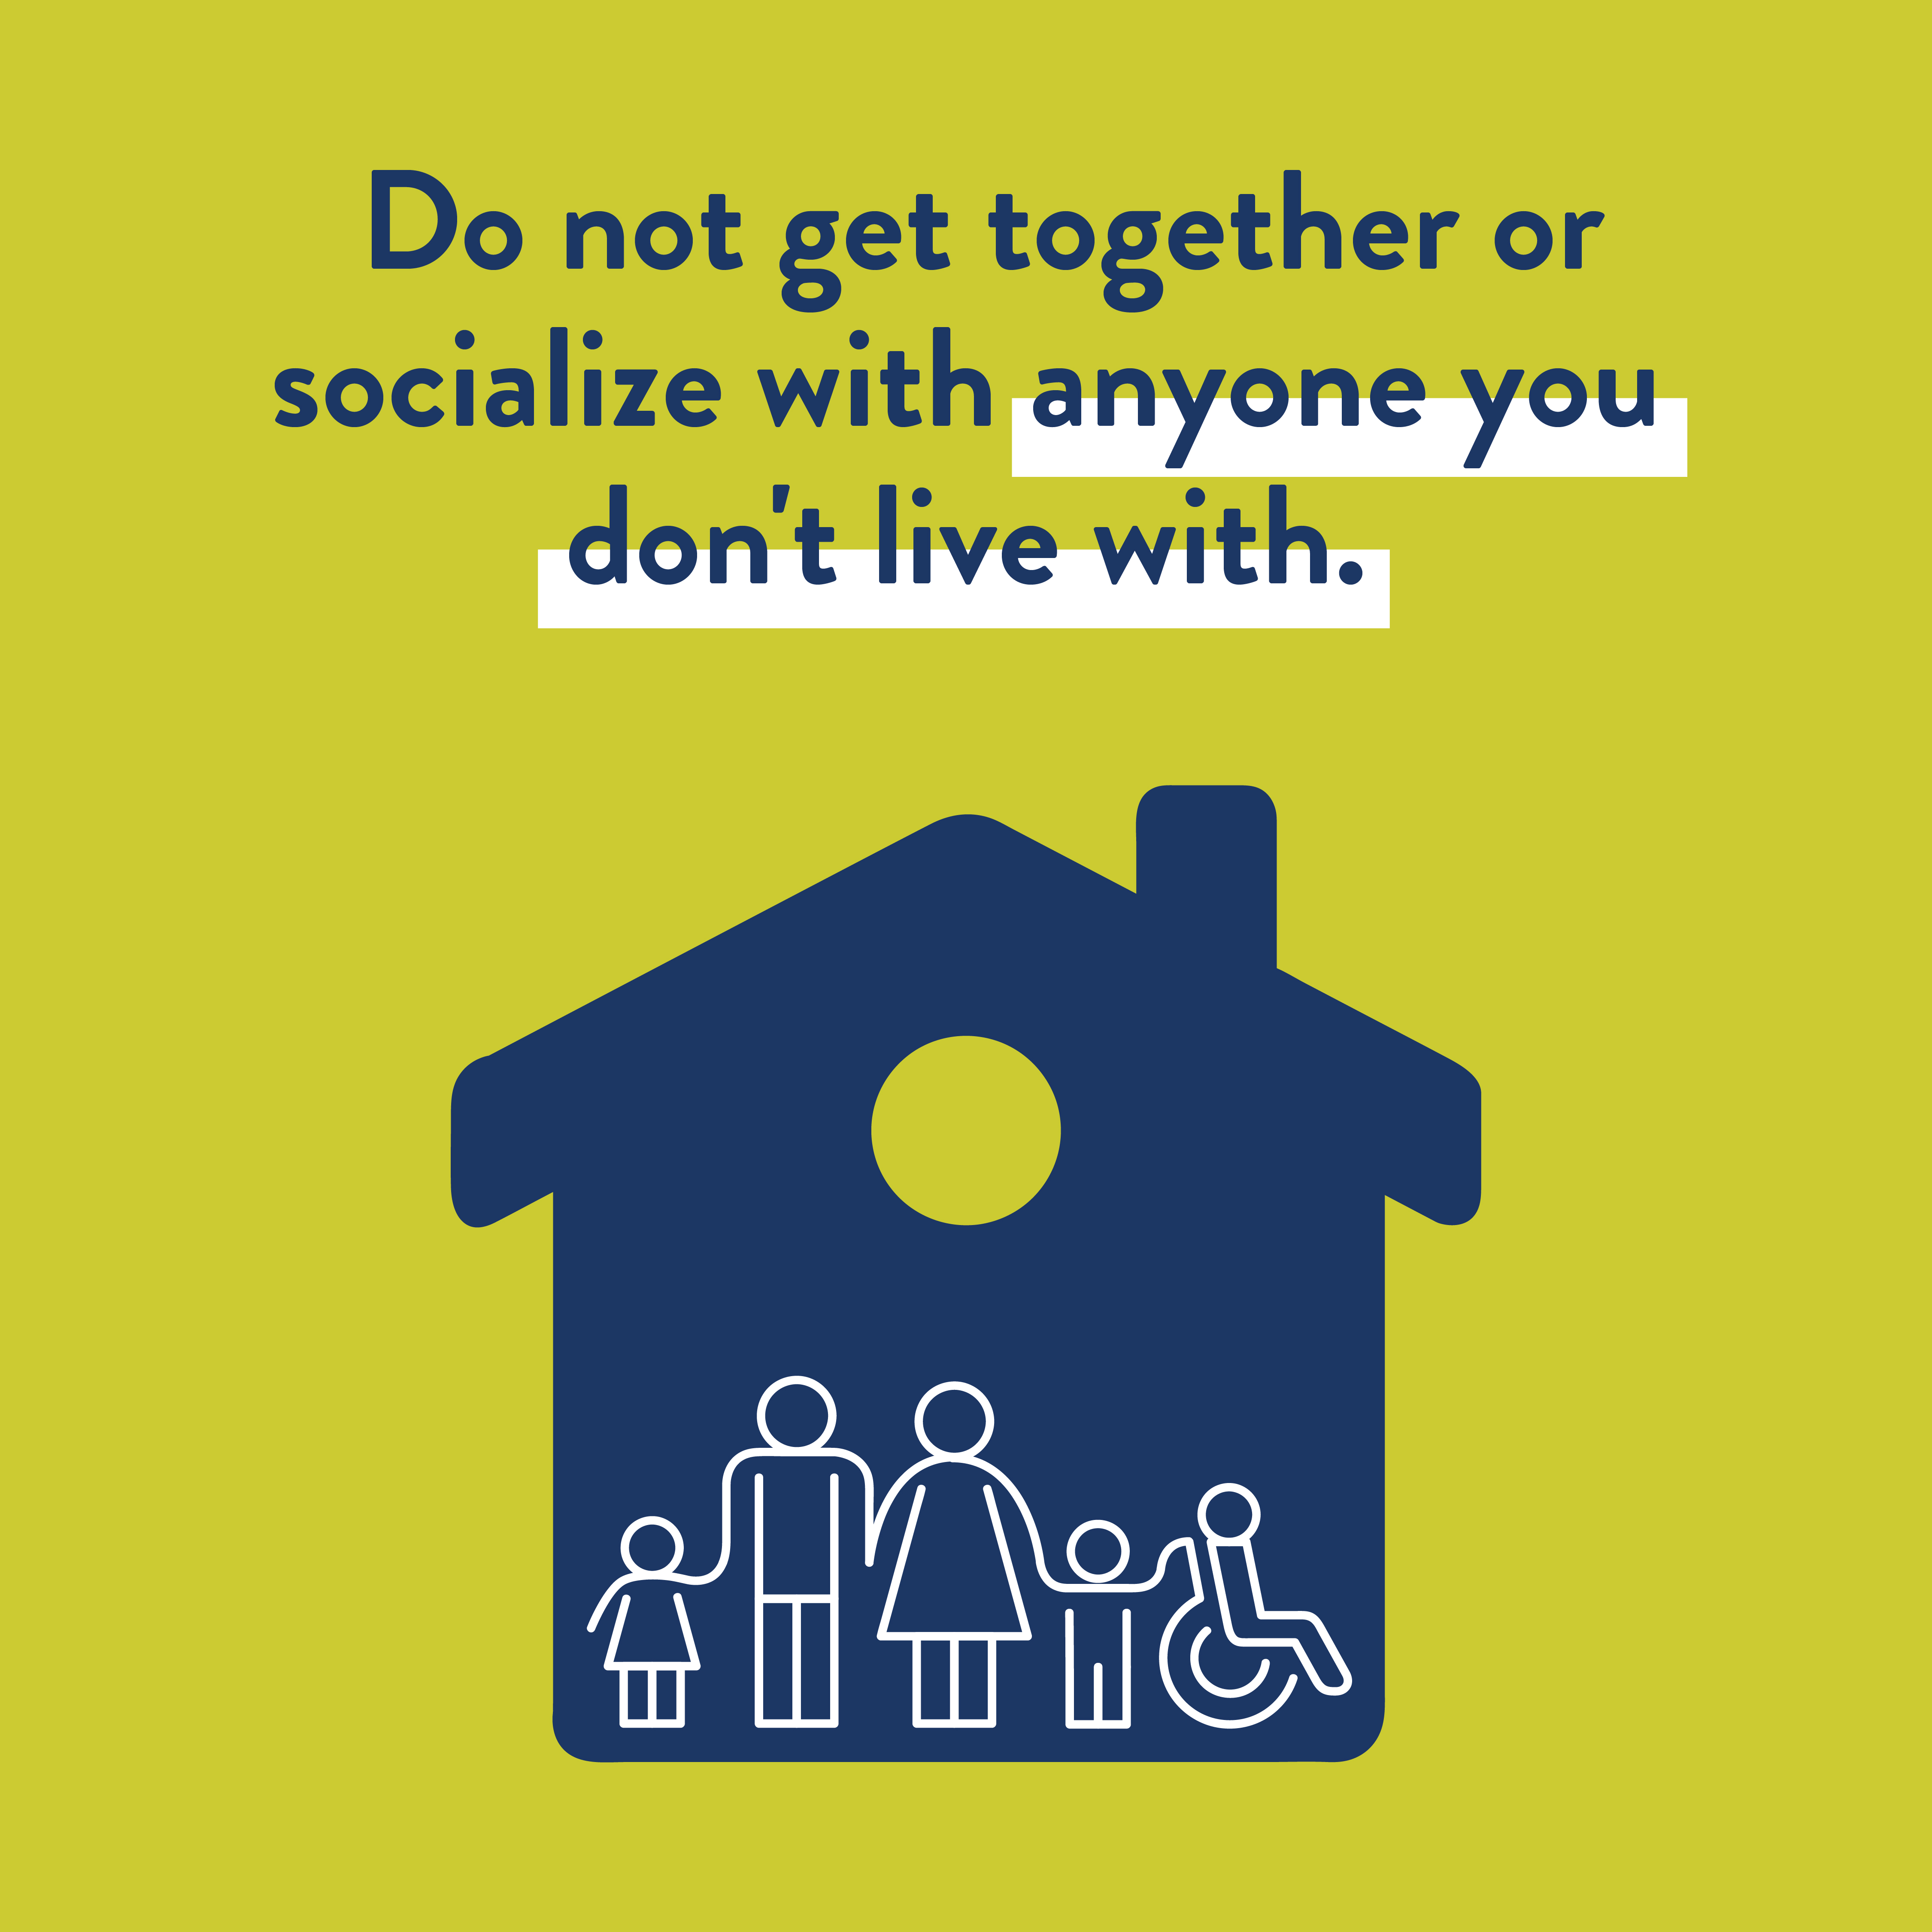 Do not get togehter or socialize with anyone you don't live with